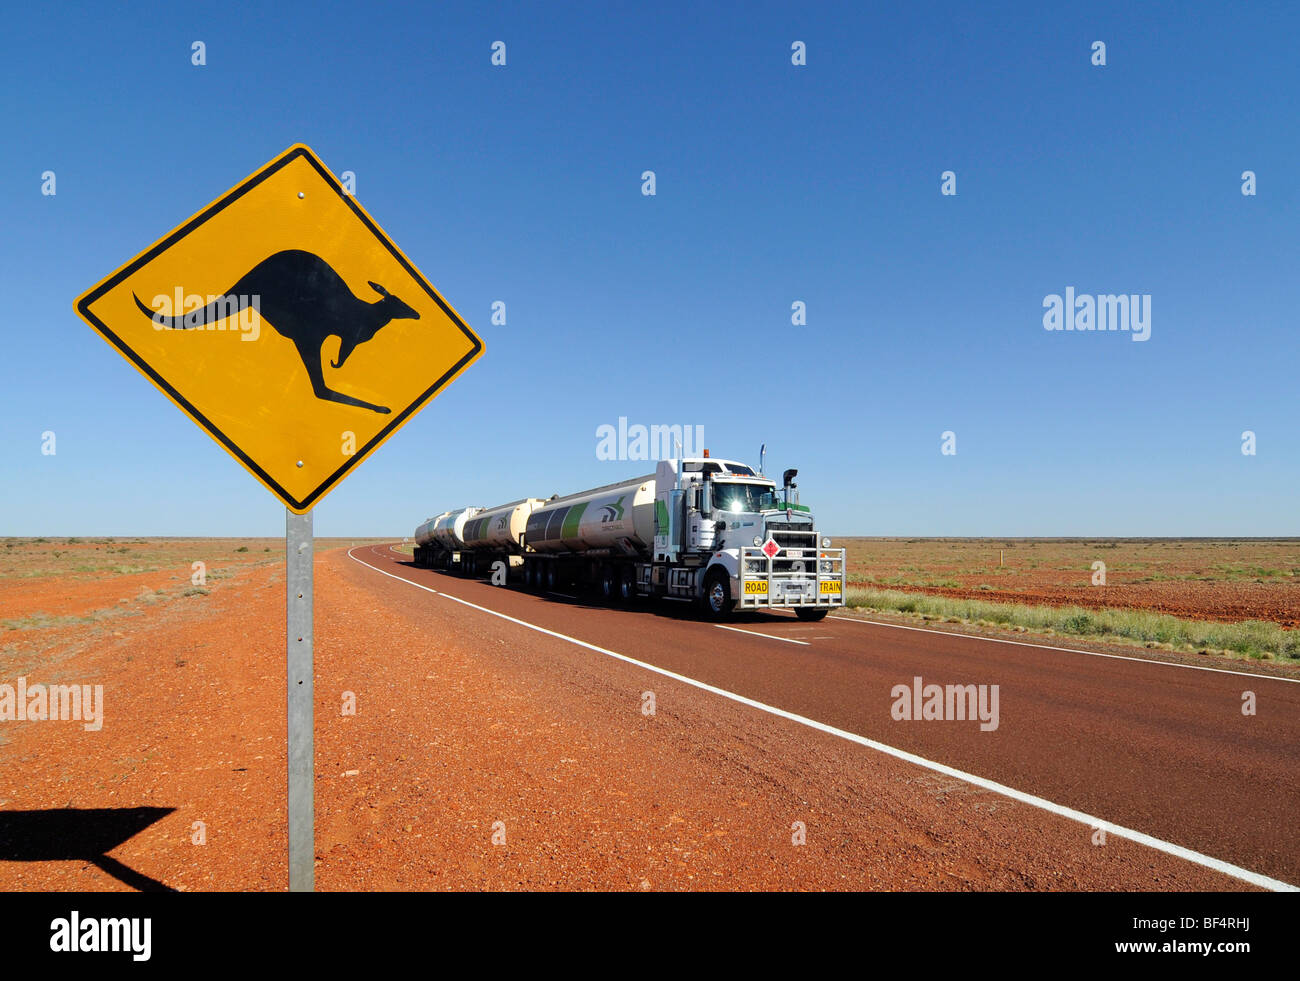 A road train passing by a kangaroo road sign in the Australian outback. - Stock Image